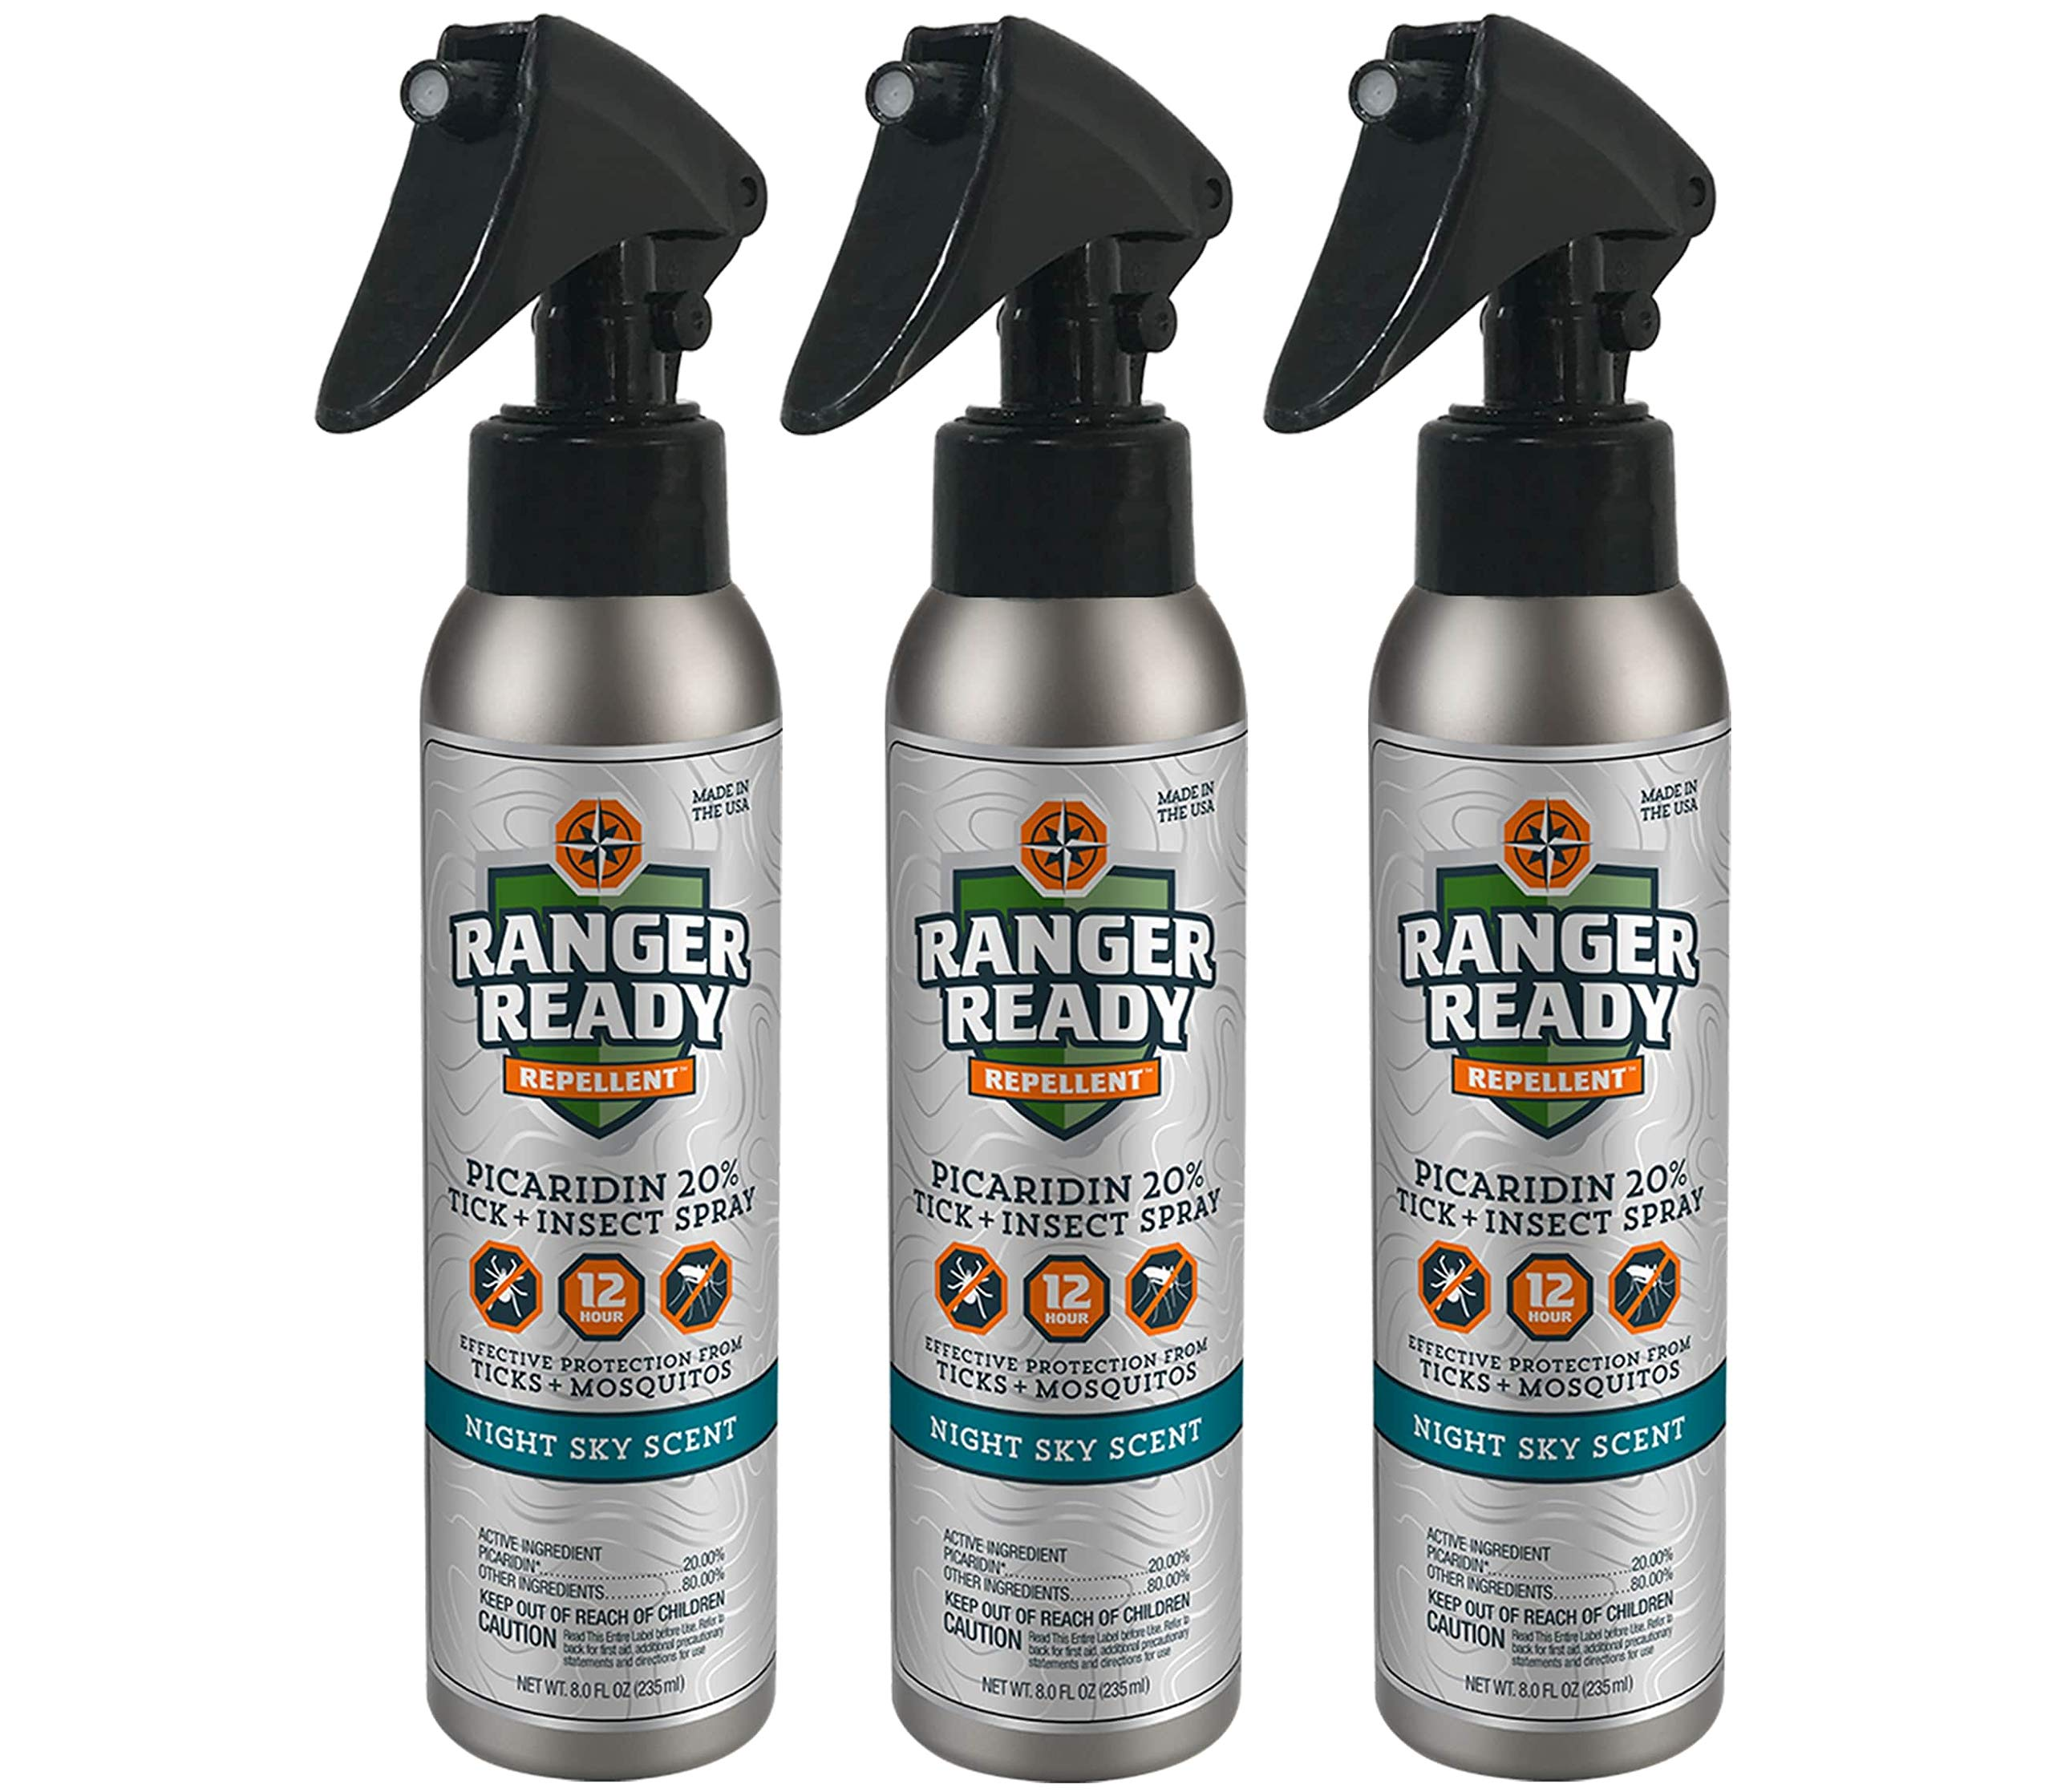 Ranger Ready Repellents Picaridin 20% Tick + Insect Repellent Expedition Pack Trigger | Night Sky Scent | 3X235ml/8.0oz by Ranger Ready Repellents